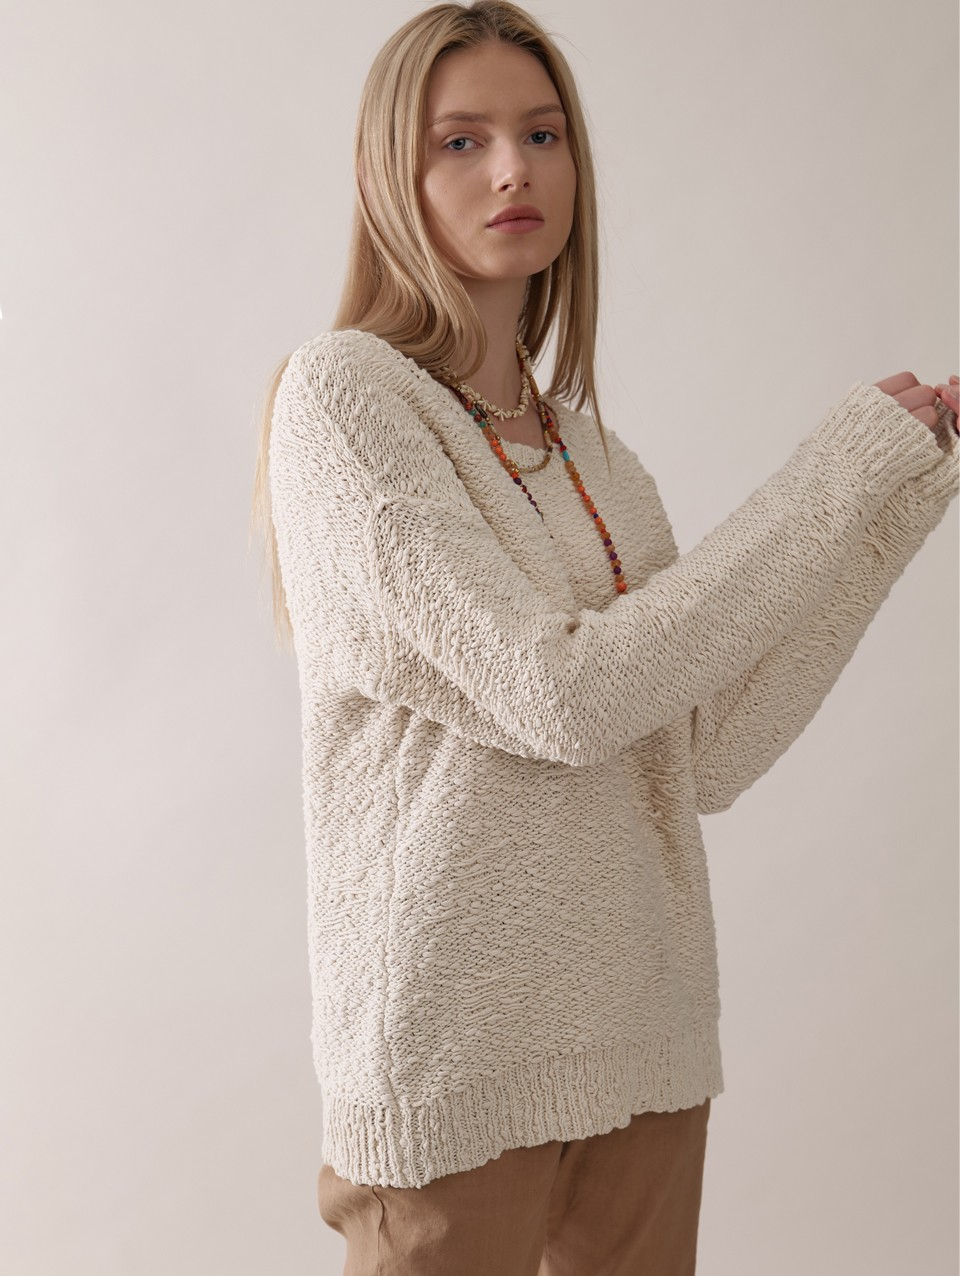 Vero Knit Sweater